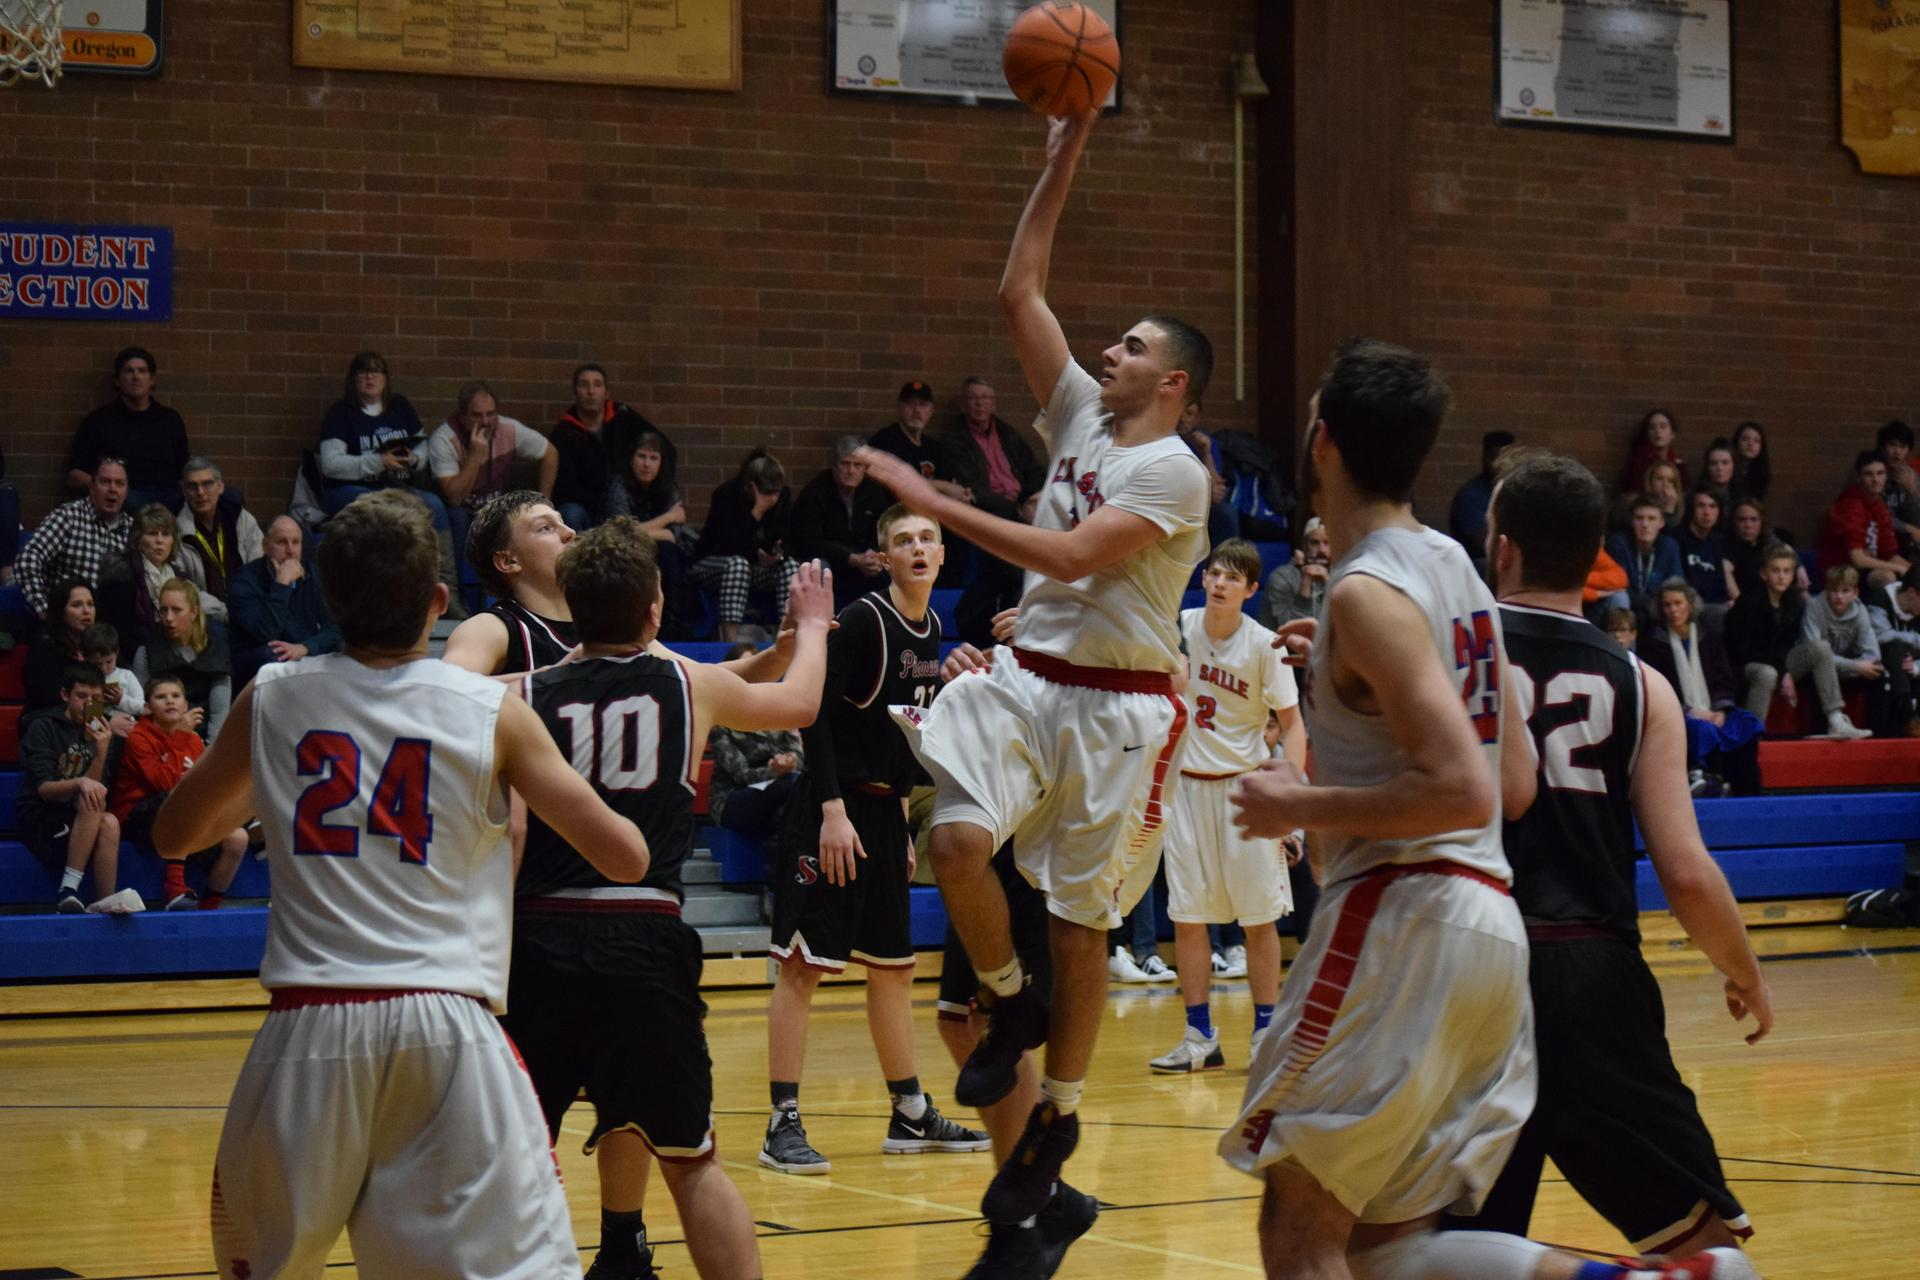 boys basketball air shot